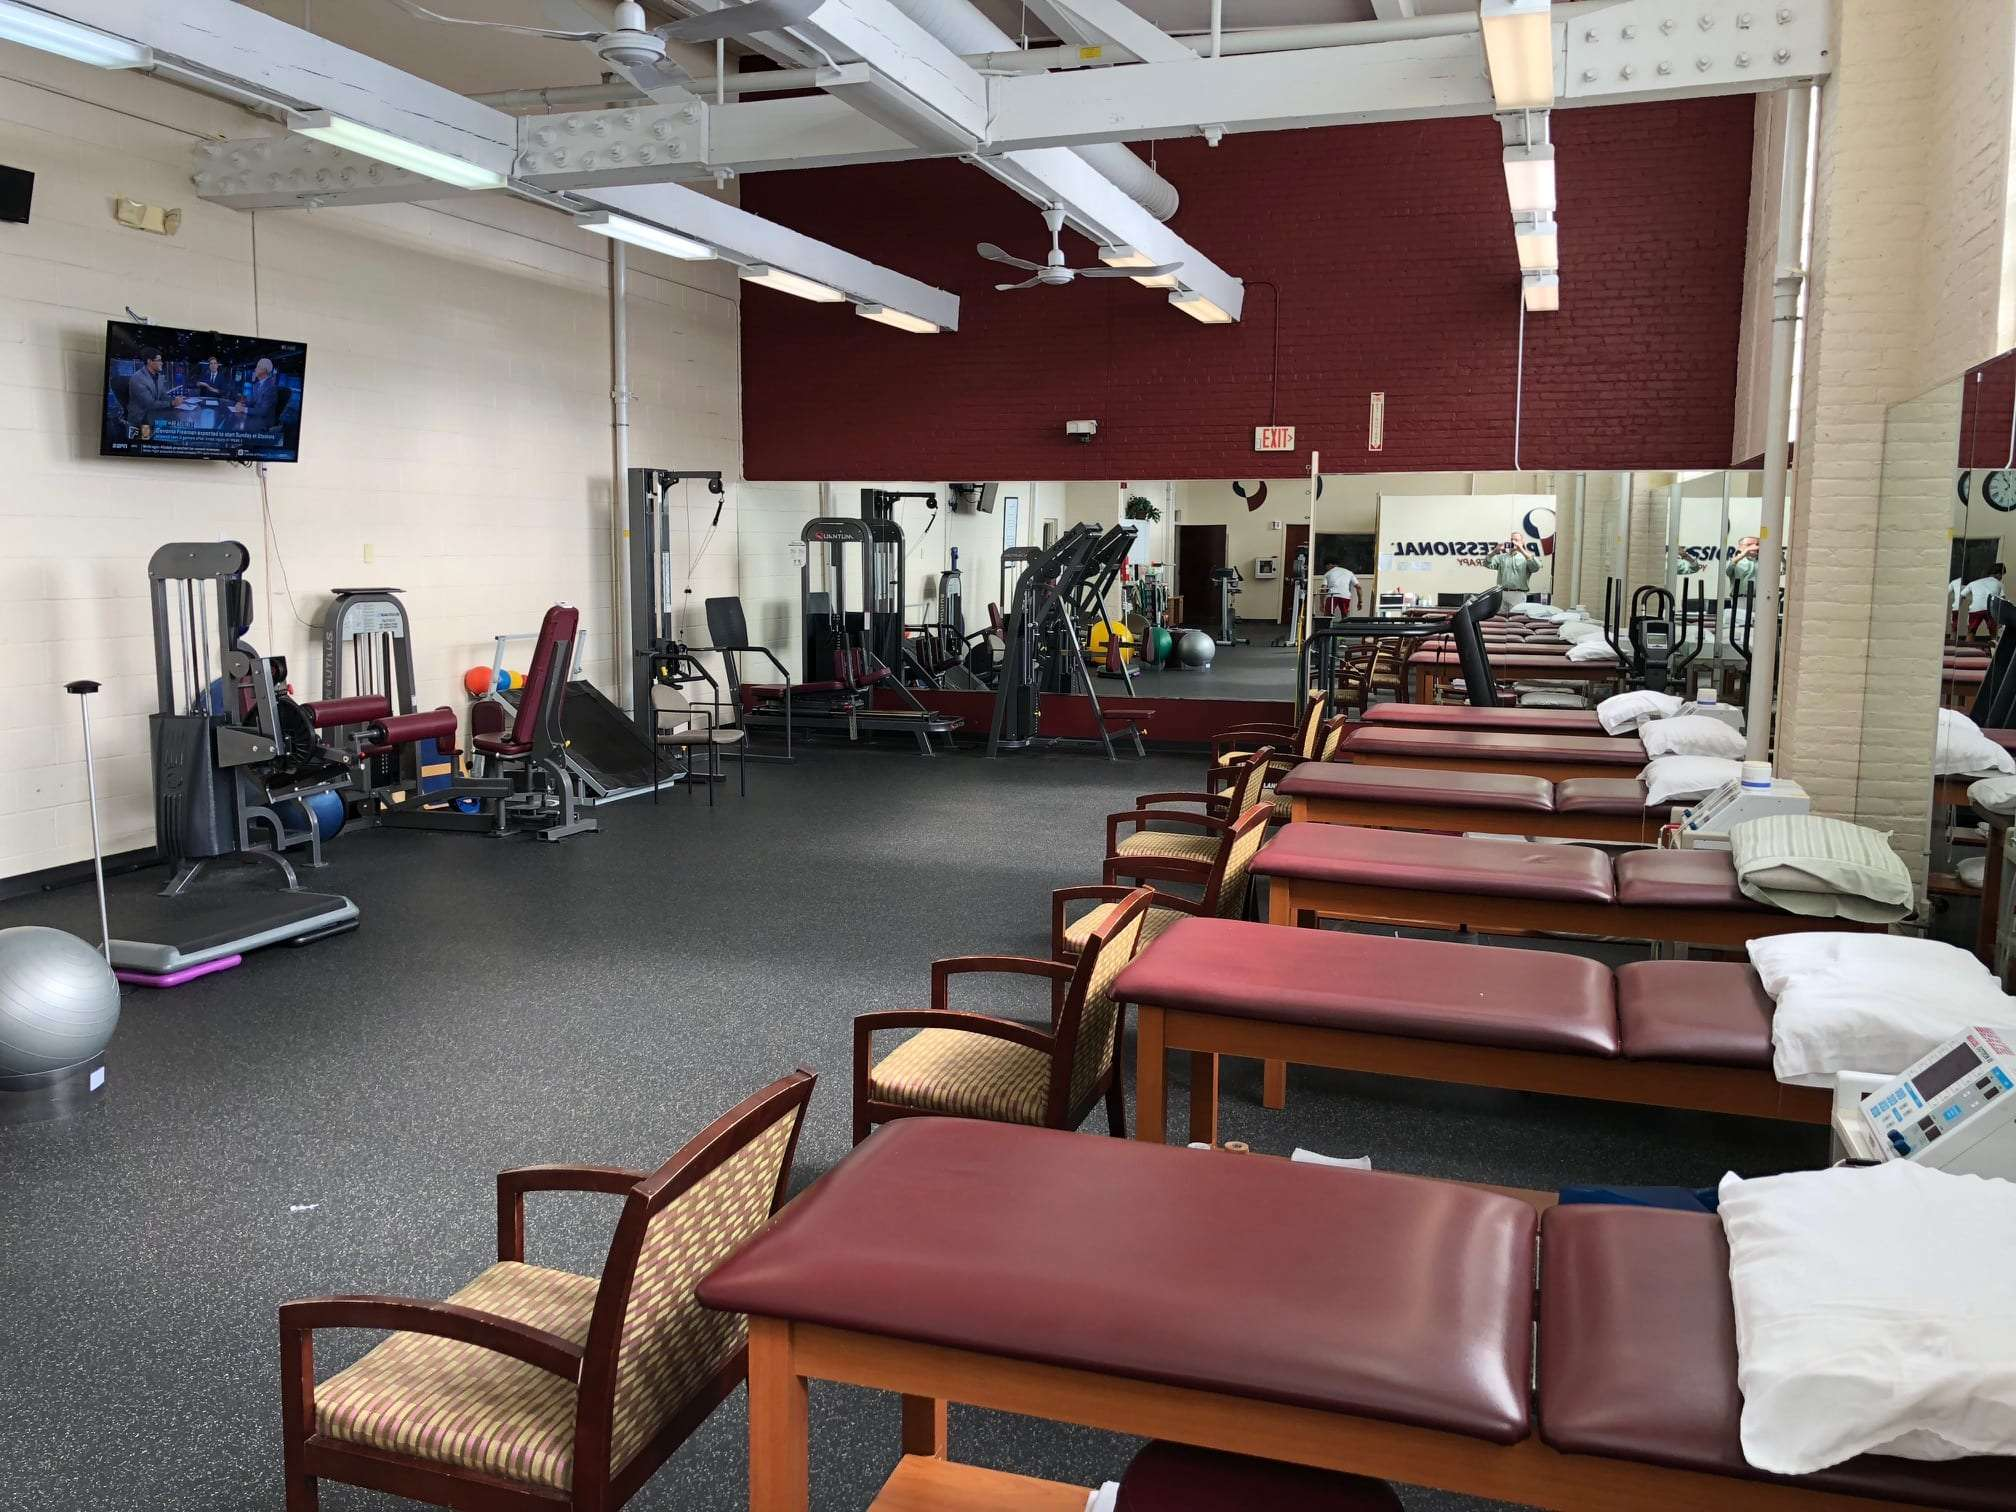 THis is an image of our training area with red stretch beds at our physical therapy clinic in Newark, New Jersey.